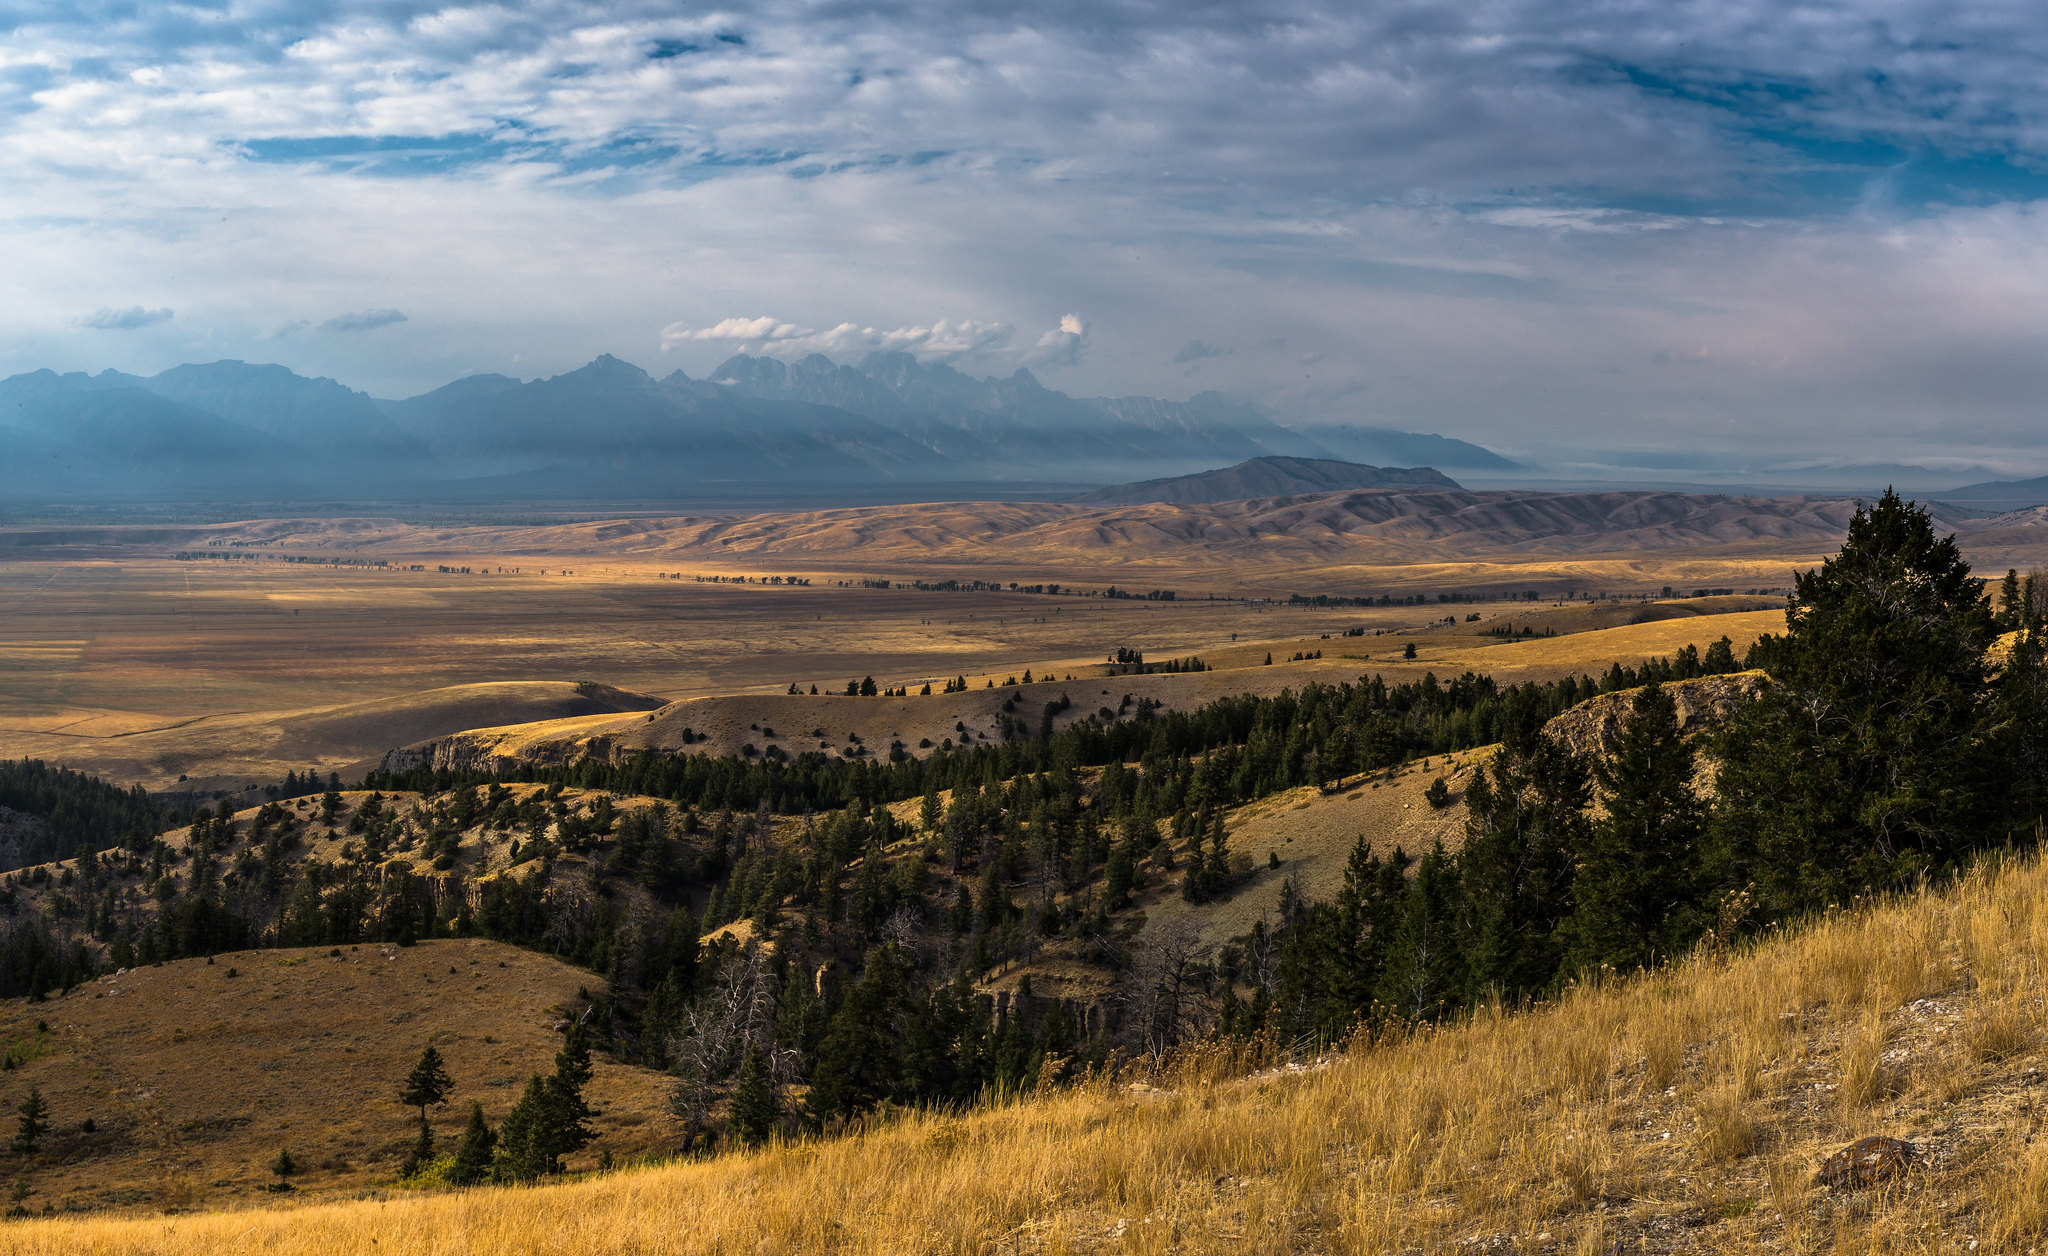 The Teton Range, partially obscured by smoke from the Berry Fire, rises beyond the Jackson Hole valley.